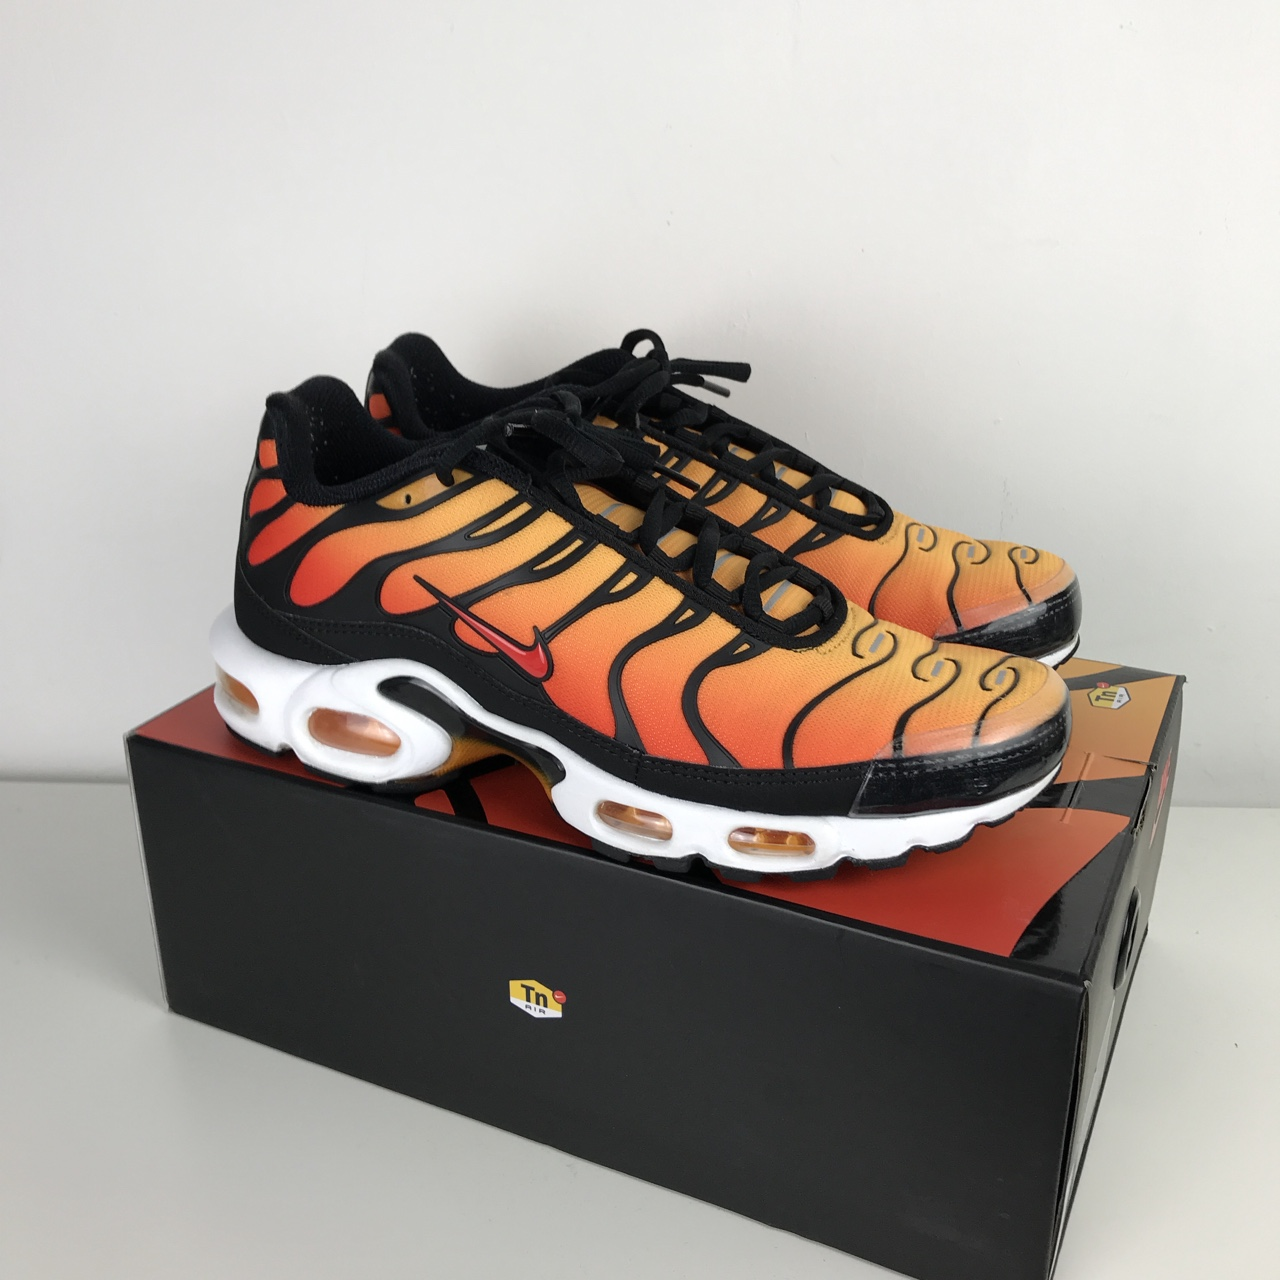 new concept 9c029 d6425 Nike Air Max Plus TN. Tiger/Sunset colourway, 2018... - Depop